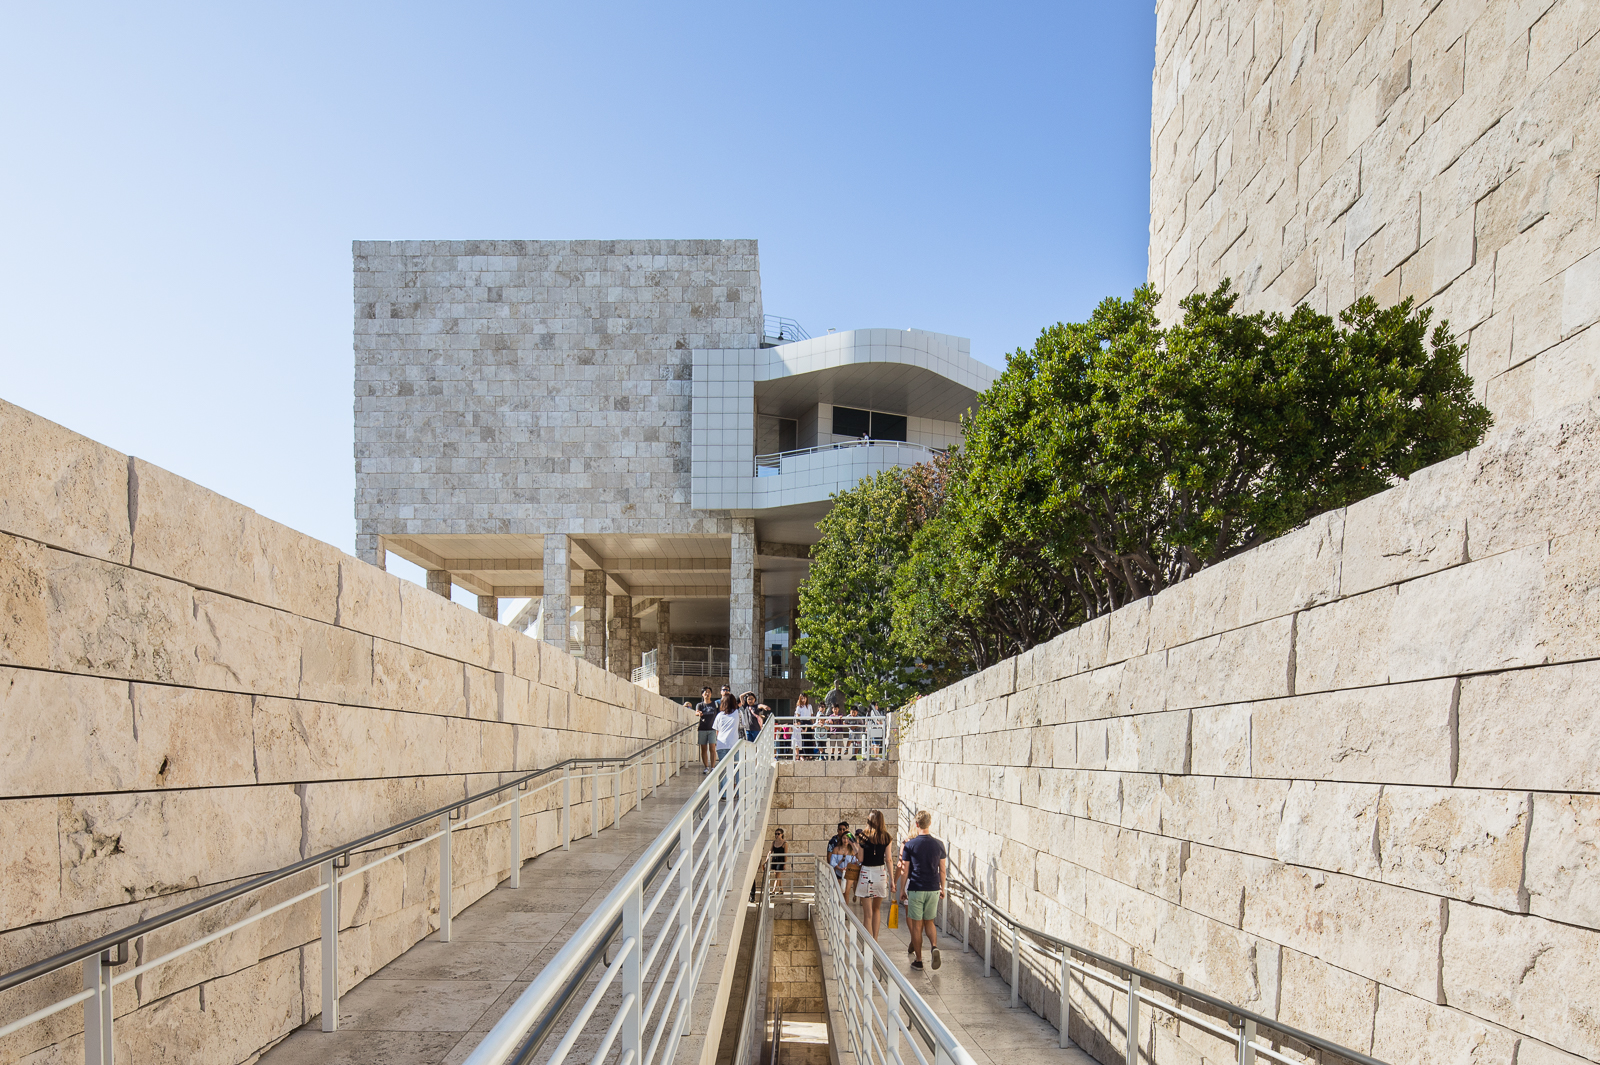 Stairs at the Getty Center designed by Richard Meier